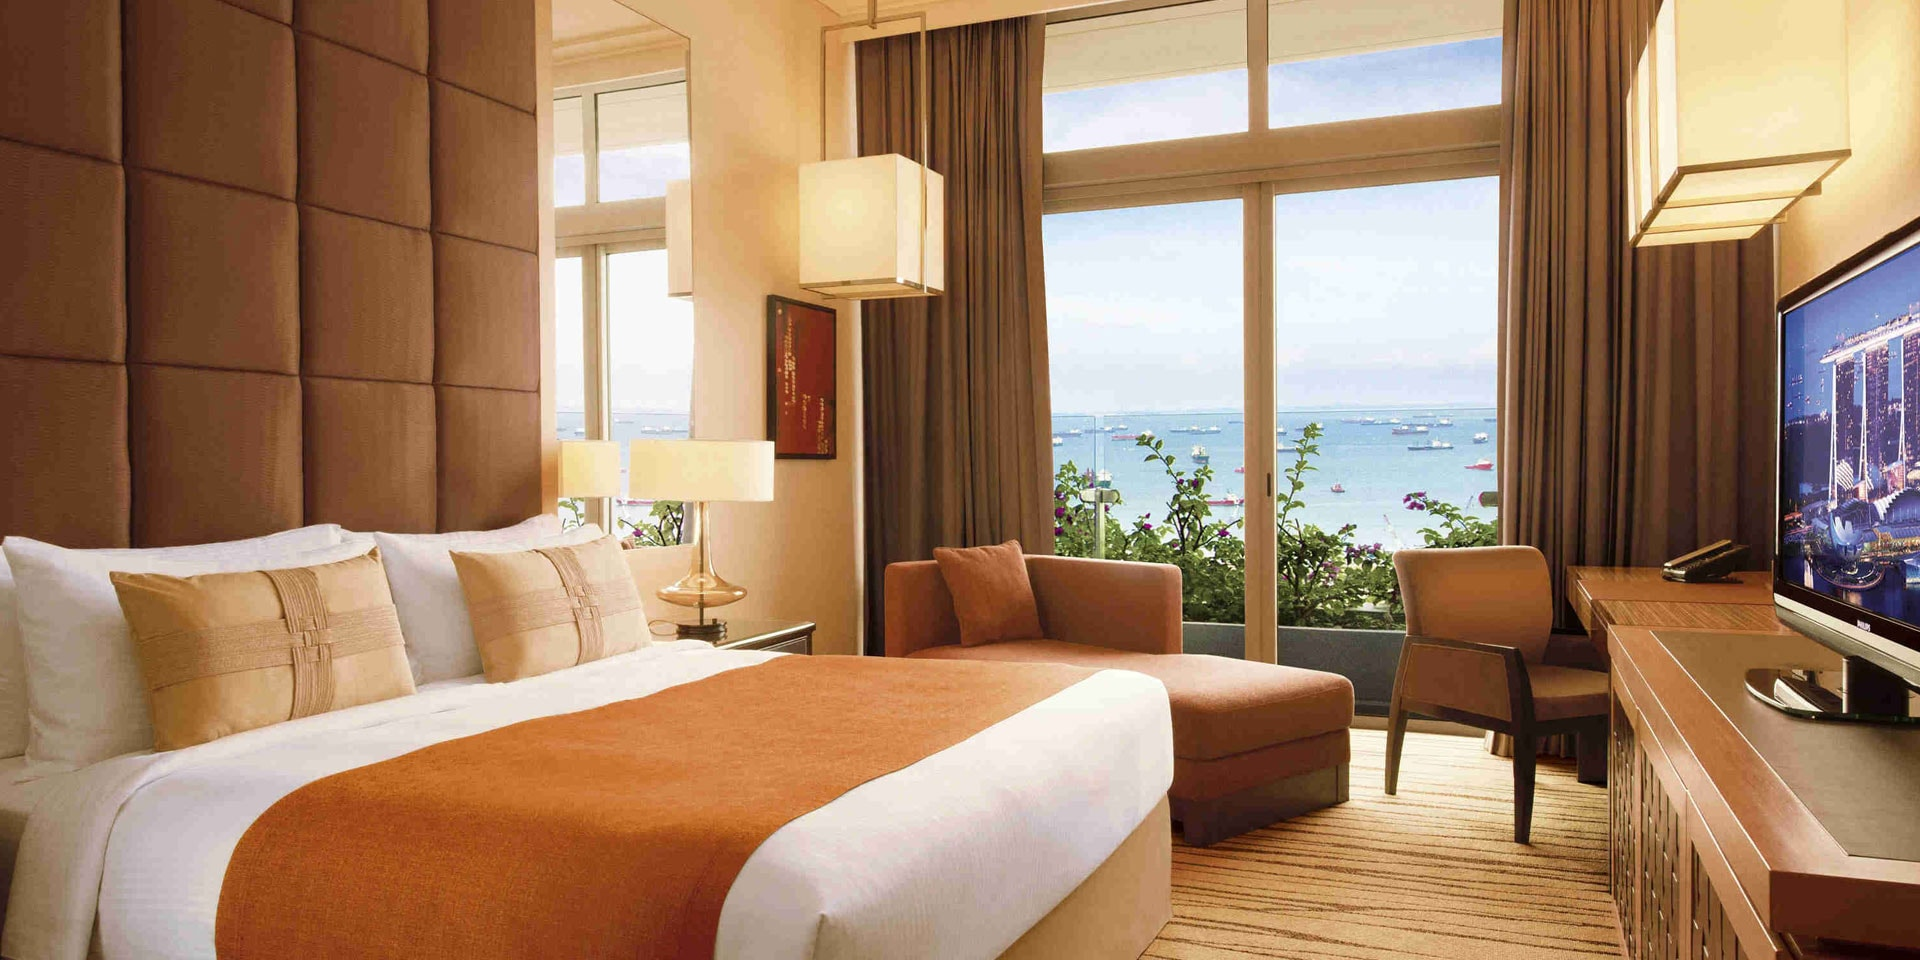 Deluxe Room in Marina Bay Sands with King Bed and Garden View